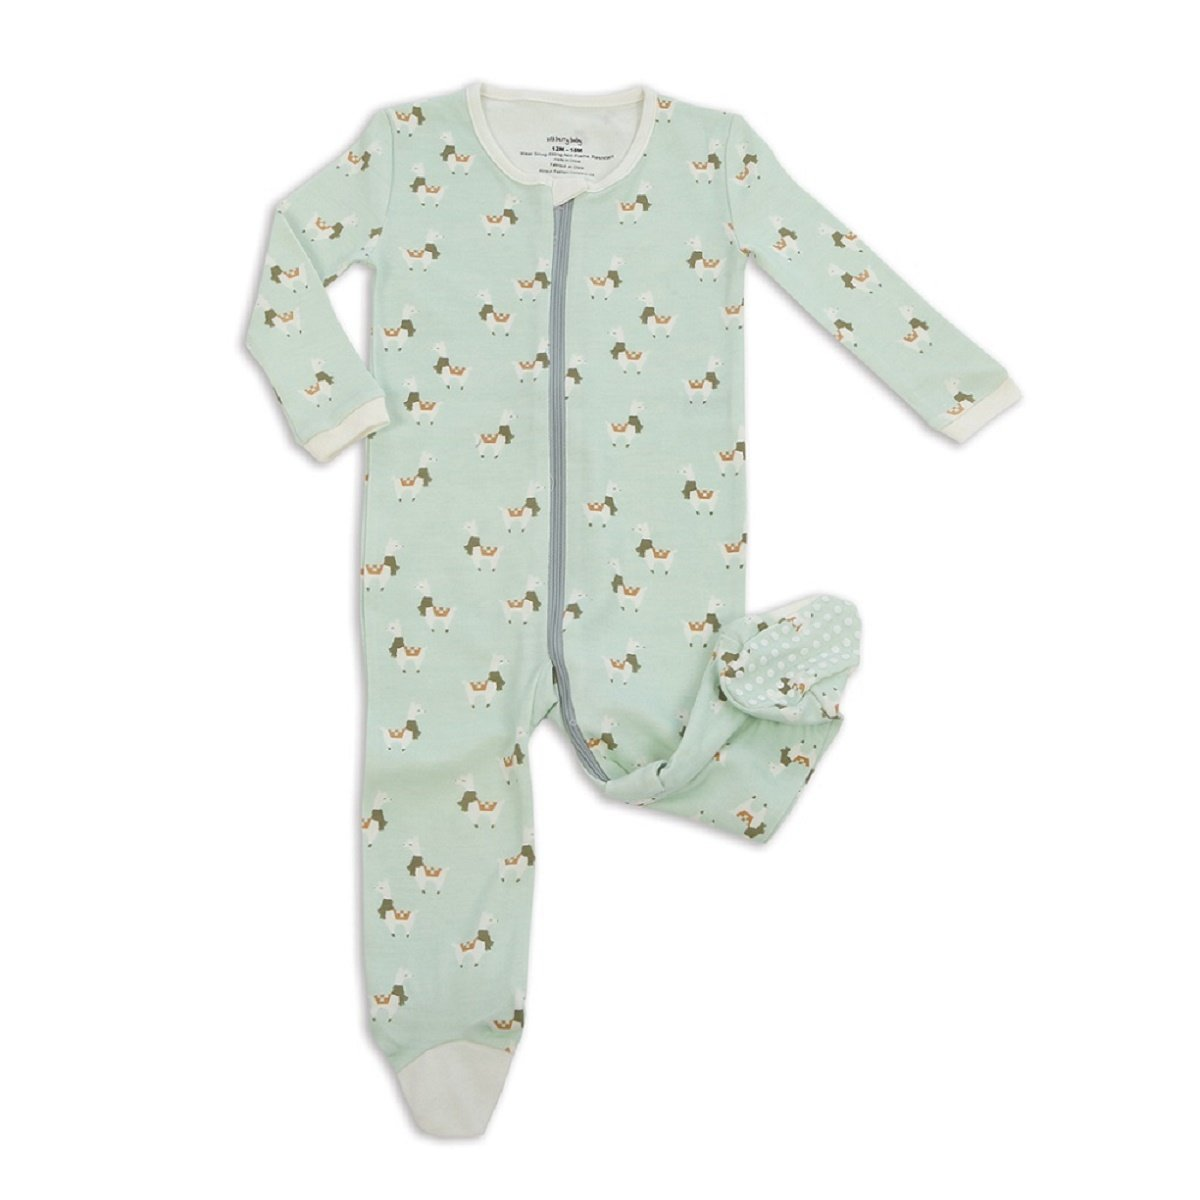 Silkberry Baby Organic Cotton Footed Sleeper with zipper